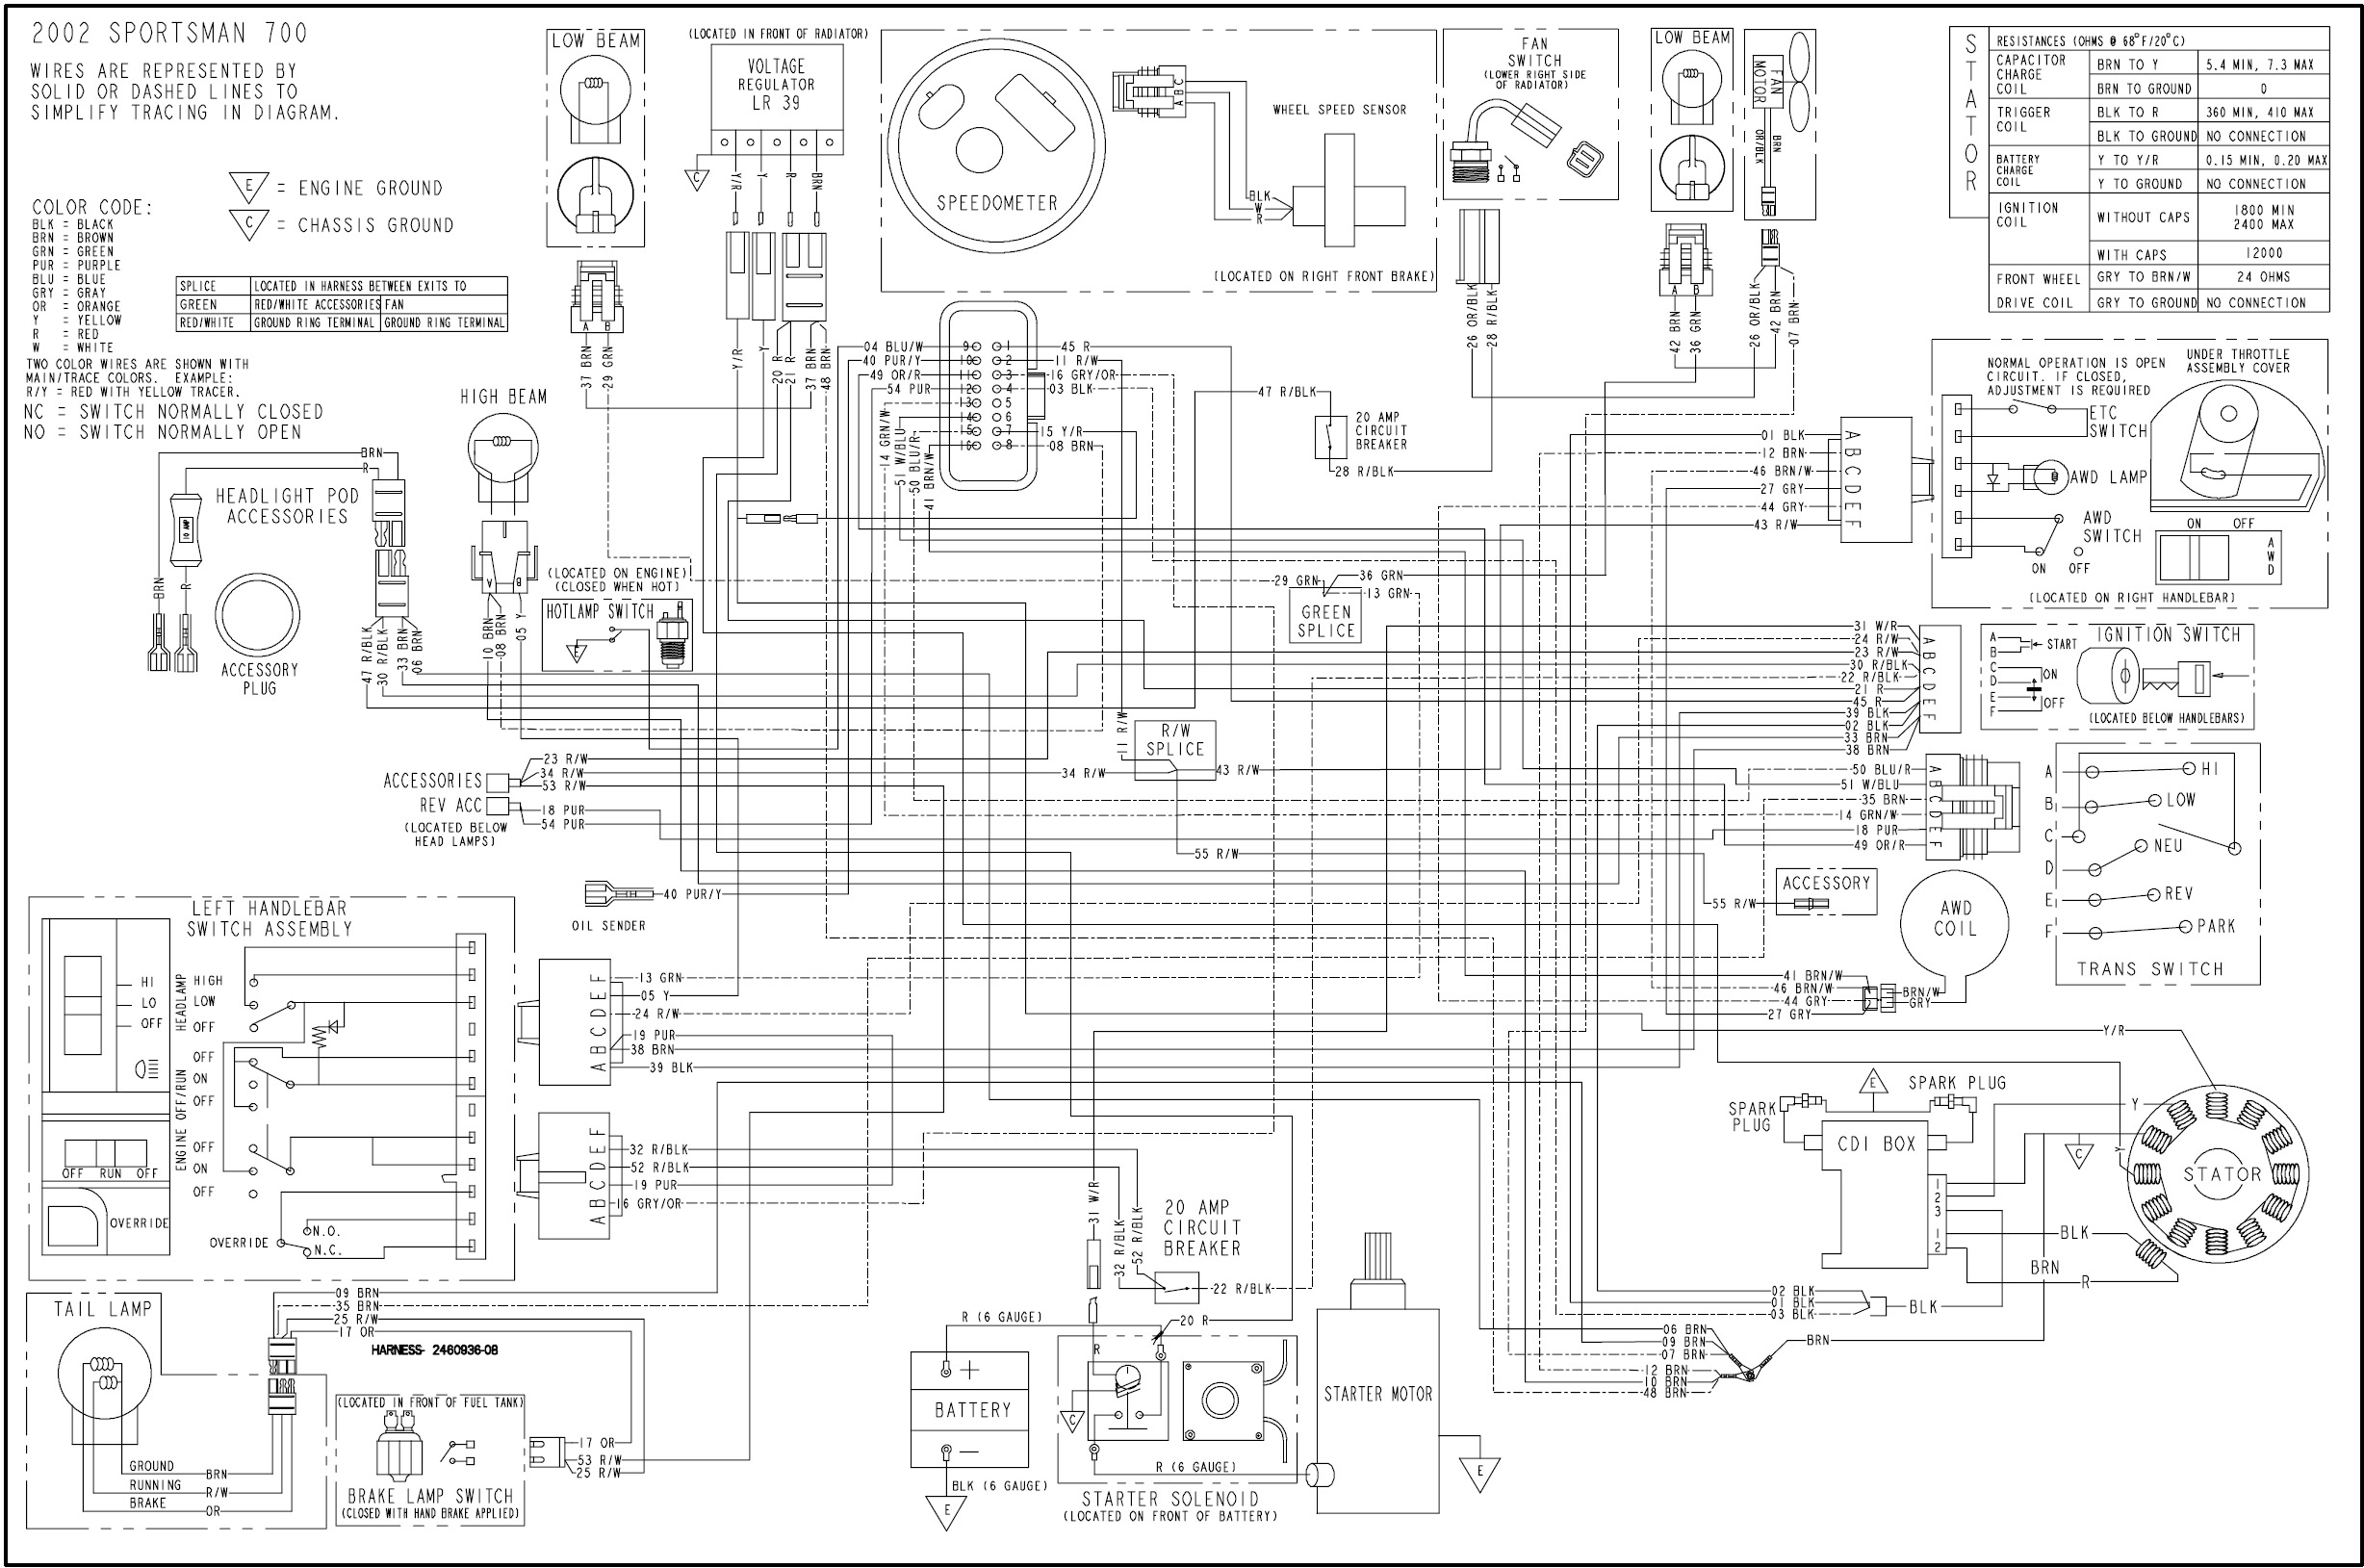 75754d1491234477 2001 sportsman 700 twin no start 2002_polaris_sportsman_700_wiring_diagram 2014 polaris outlaw 50 wiring diagram efcaviation com 2004 polaris sportsman 90 wiring diagram at n-0.co